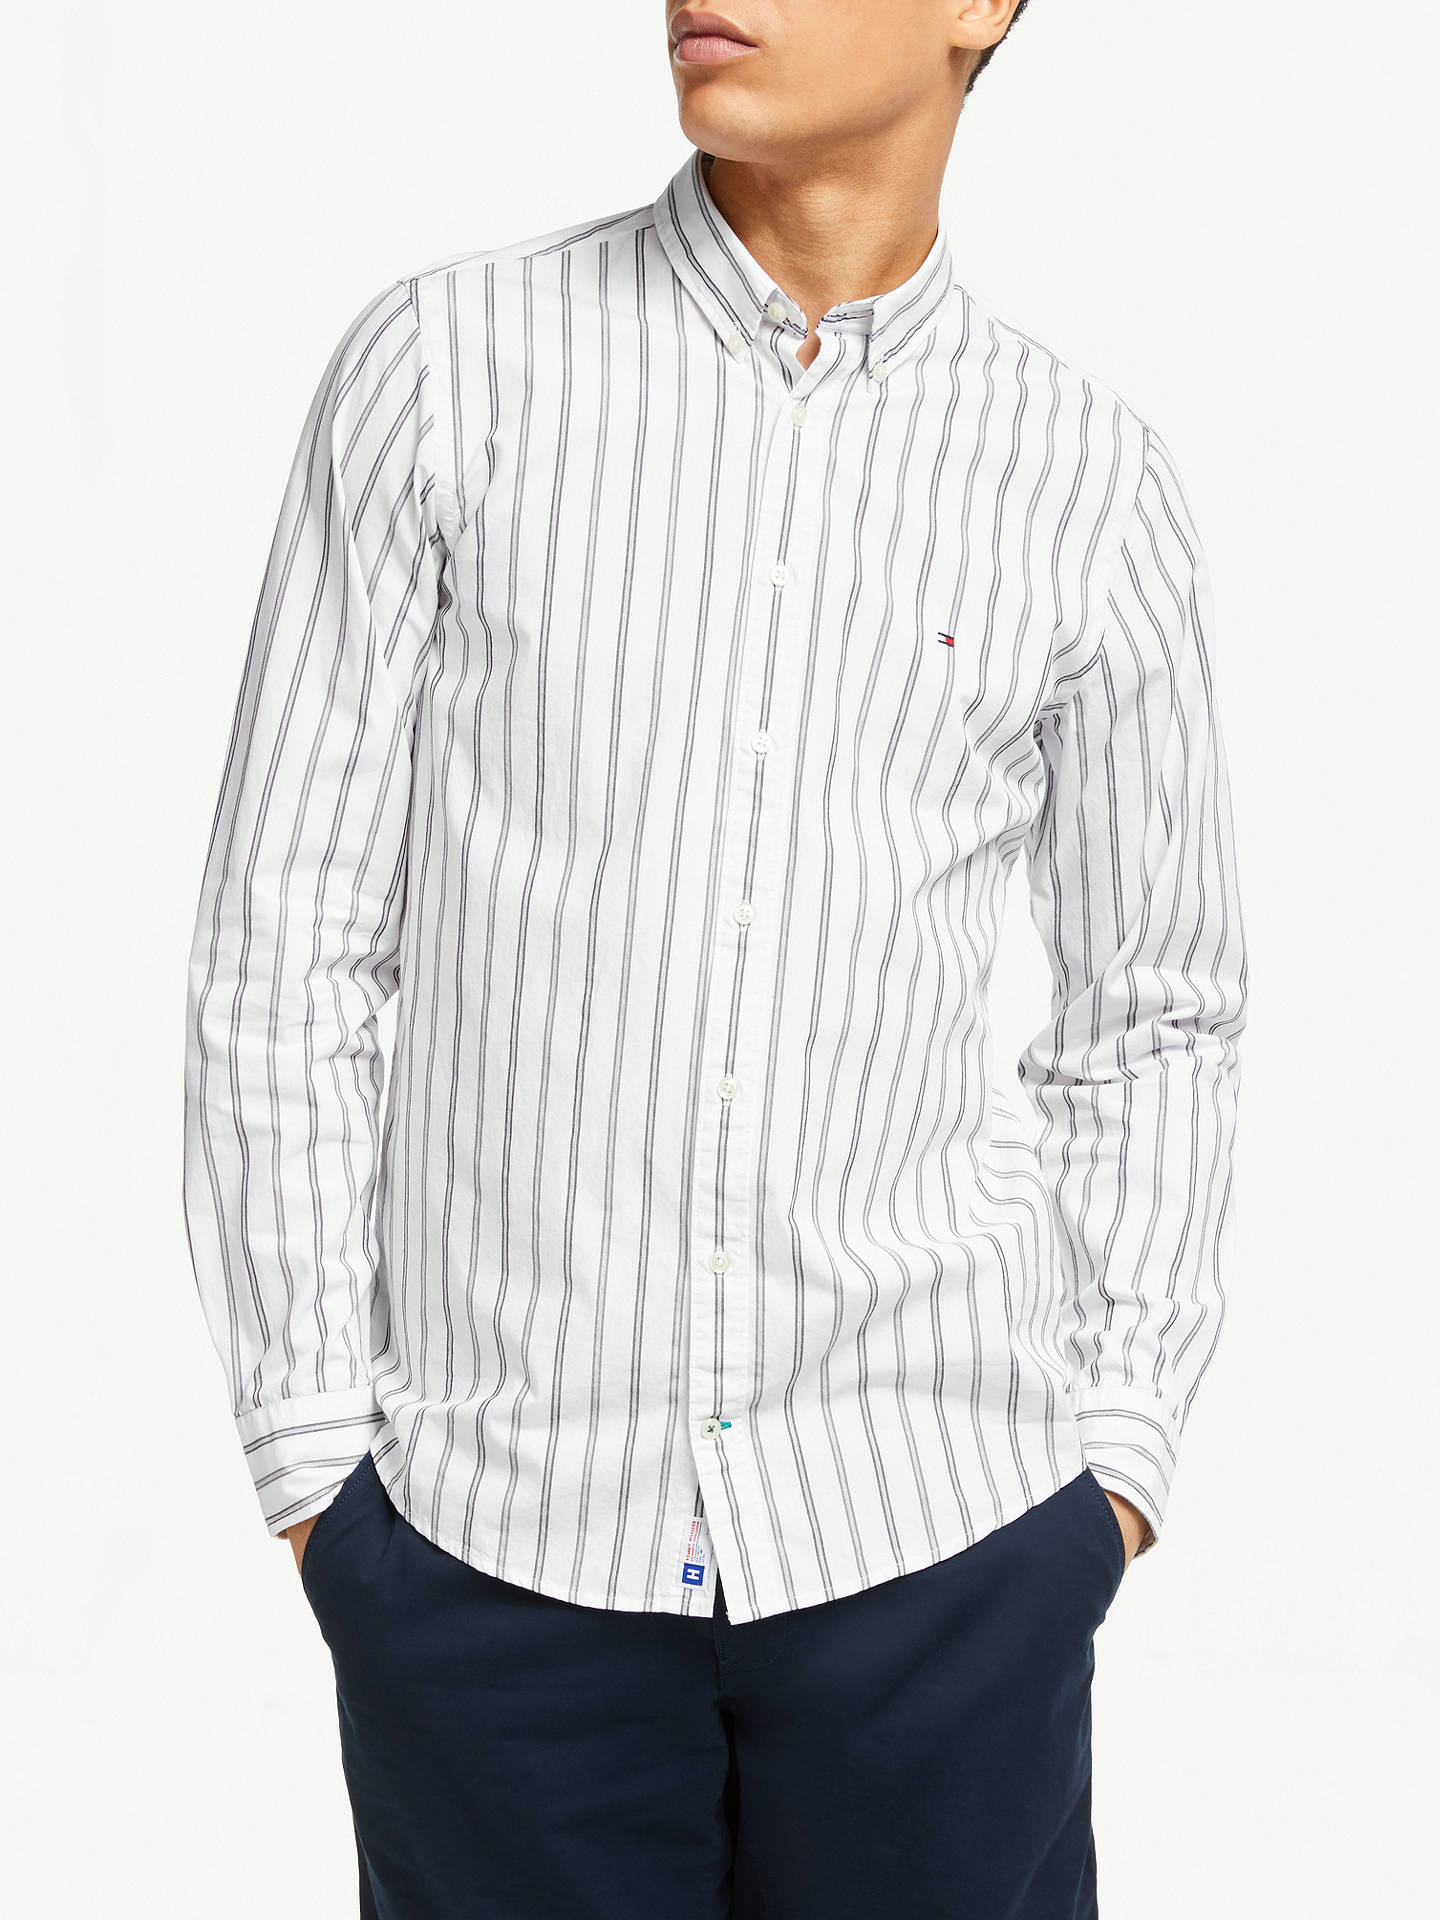 ac8c862e1 Buy Tommy Hilfiger Slim Fit Campus Stripe Shirt, White, M Online at  johnlewis.